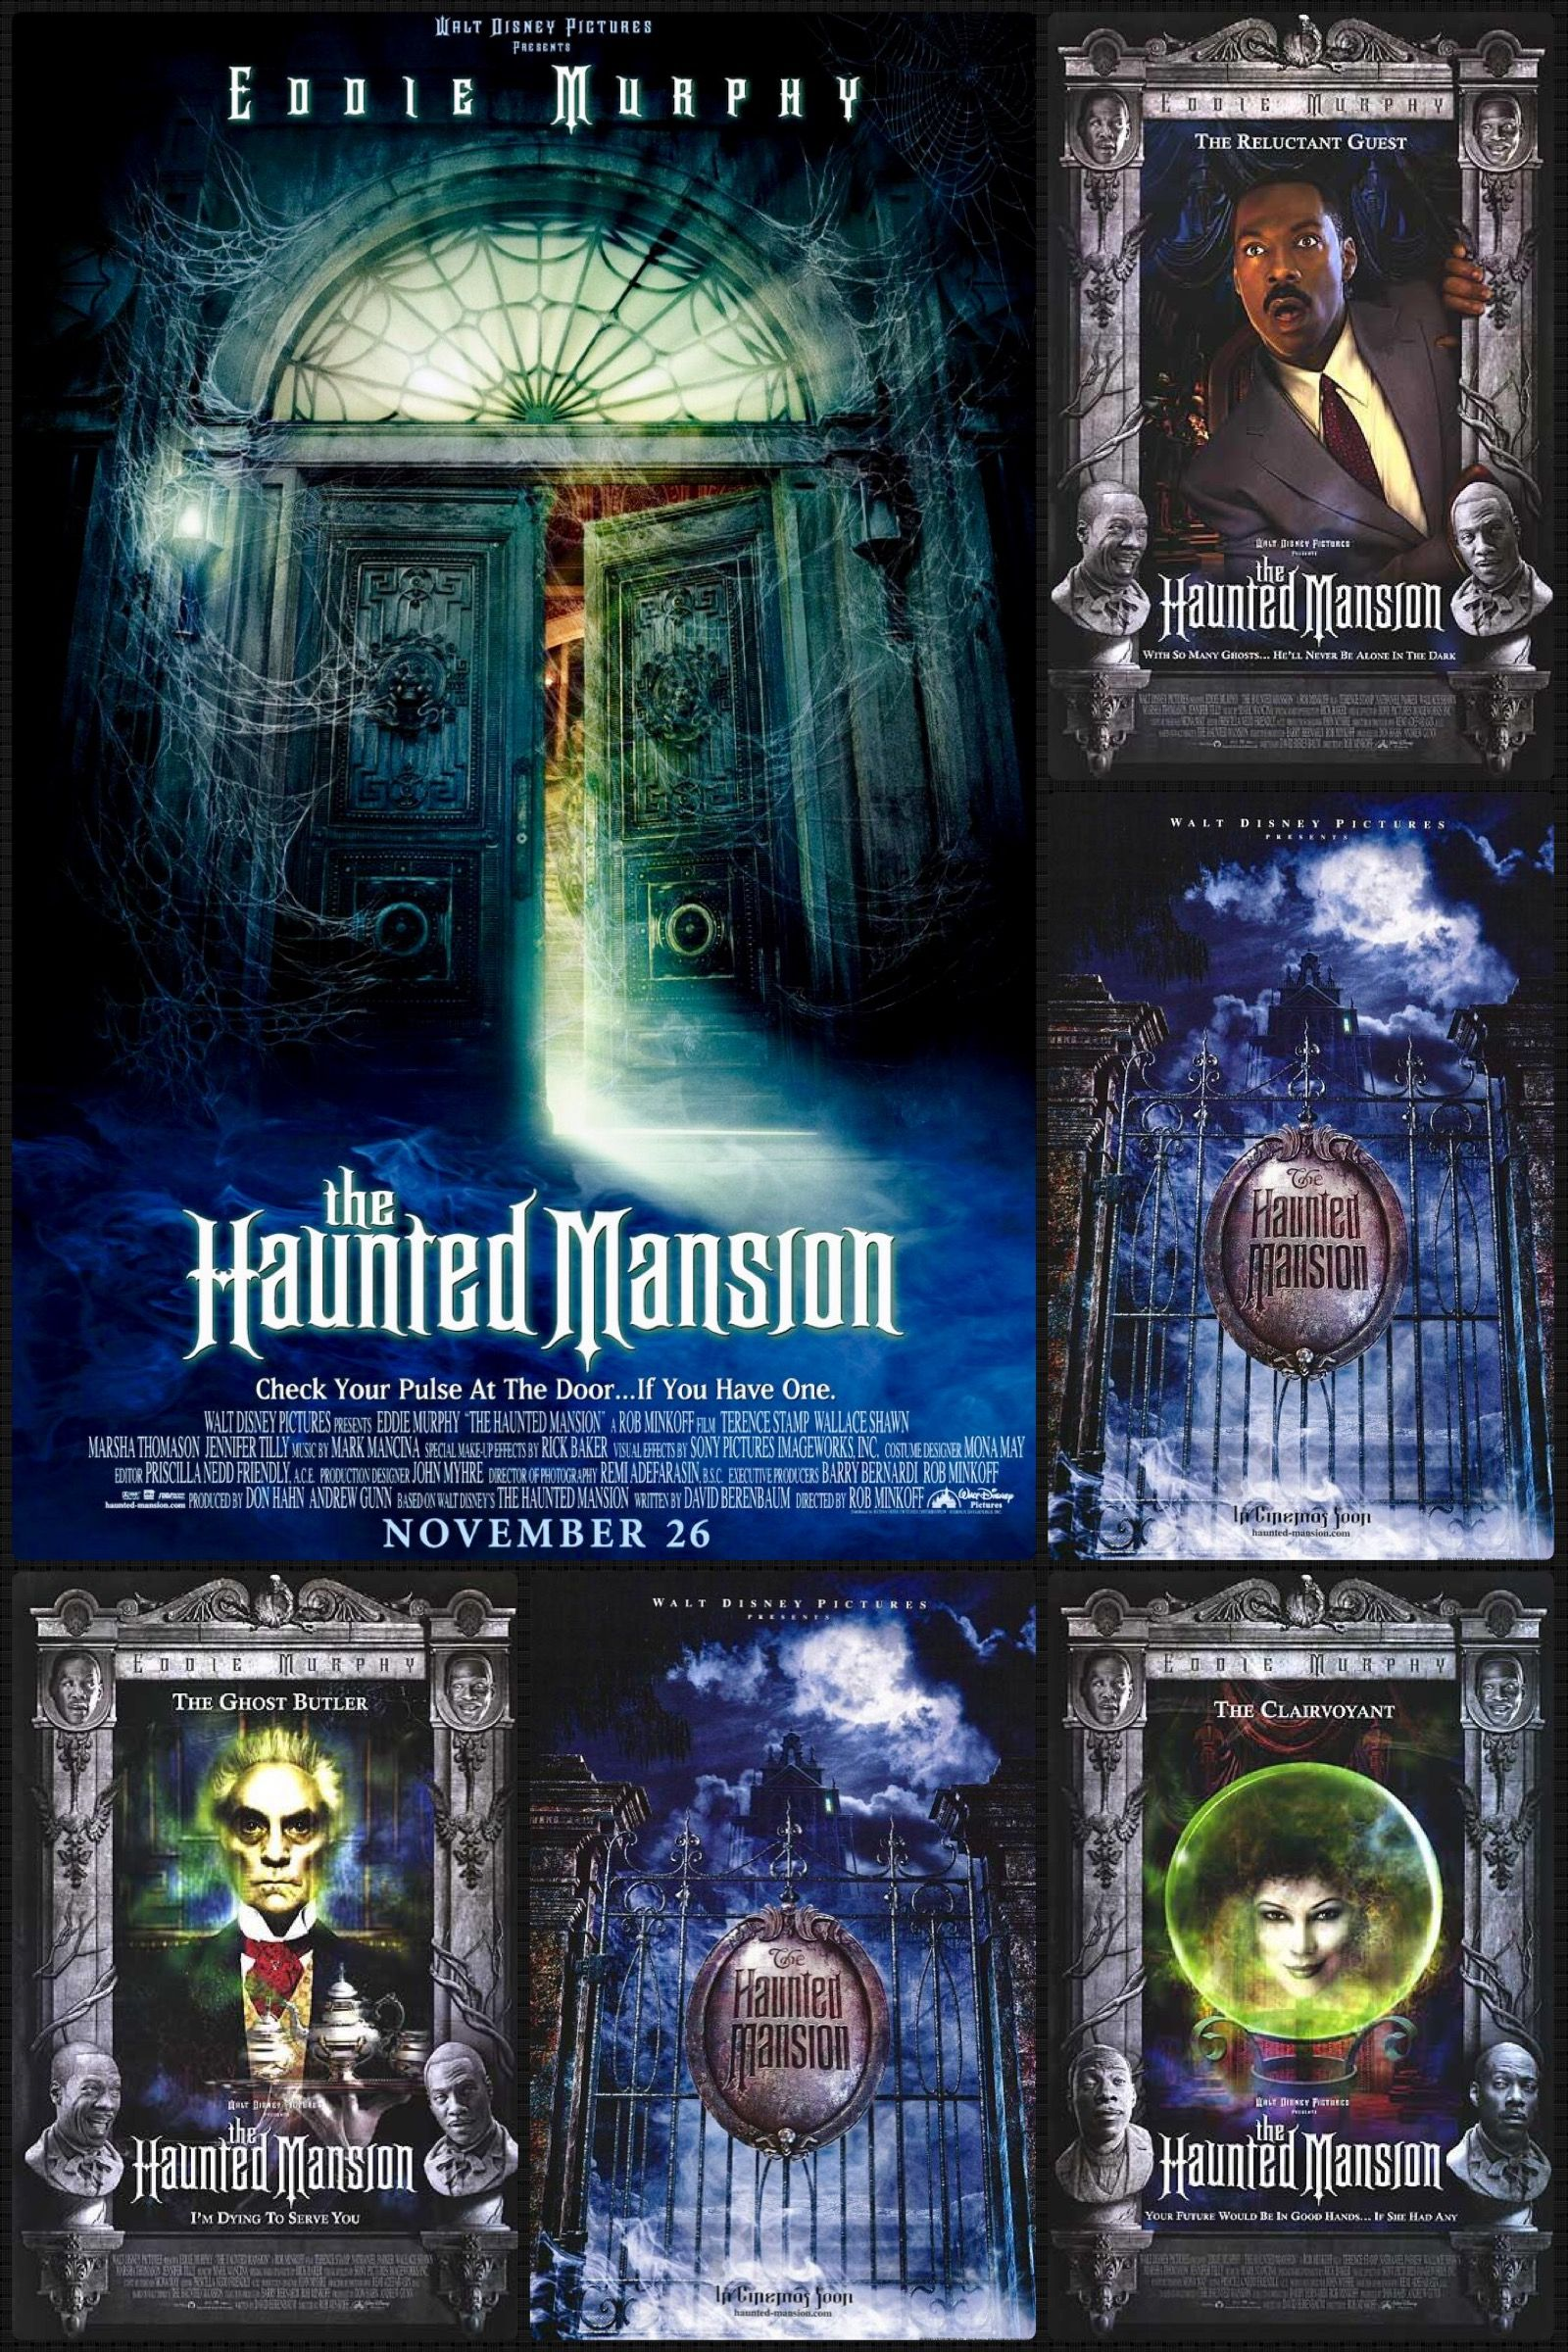 The Haunted Mansion Haunted Mansion Disney Pictures Movie Posters